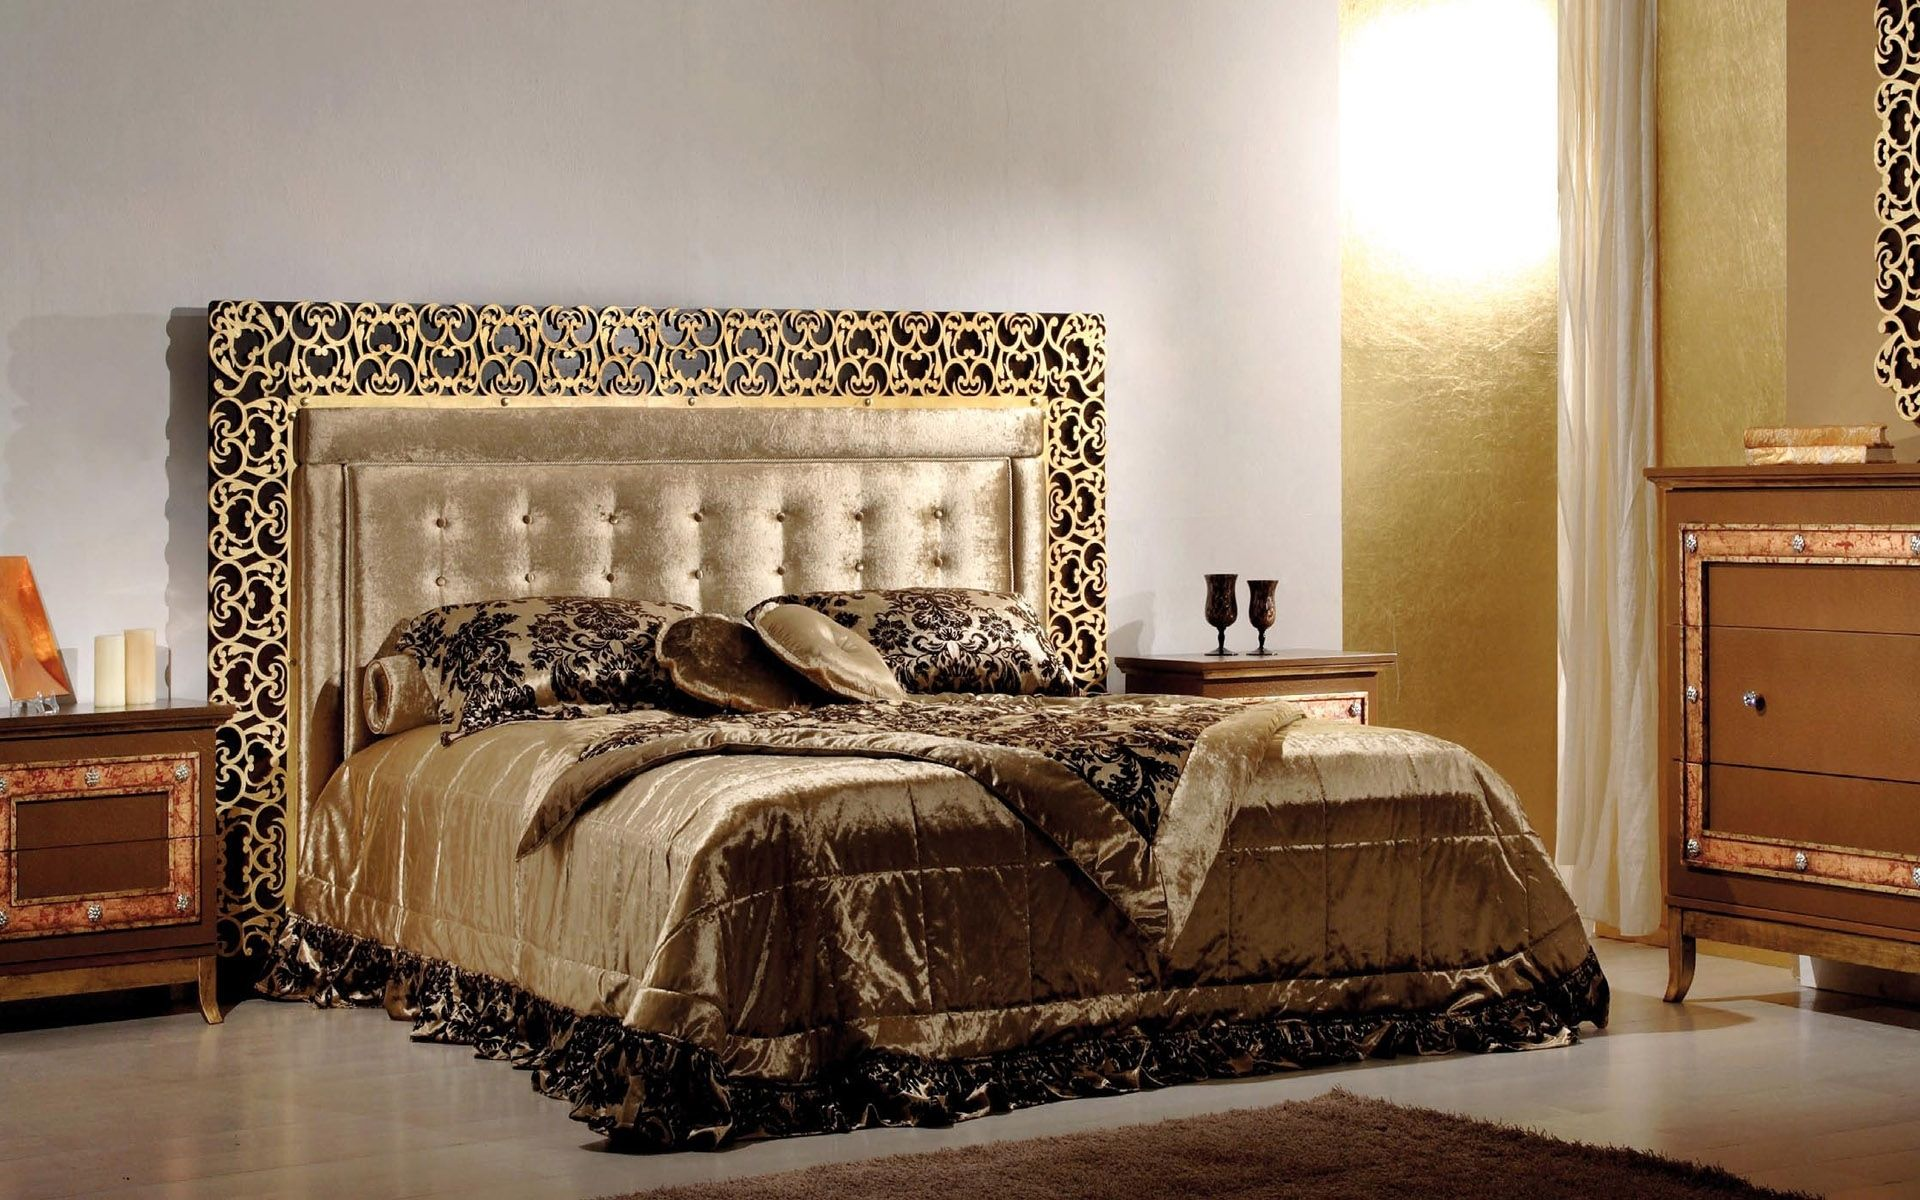 Luxury inspiration bed collection design modern gold black for Designer bed pics